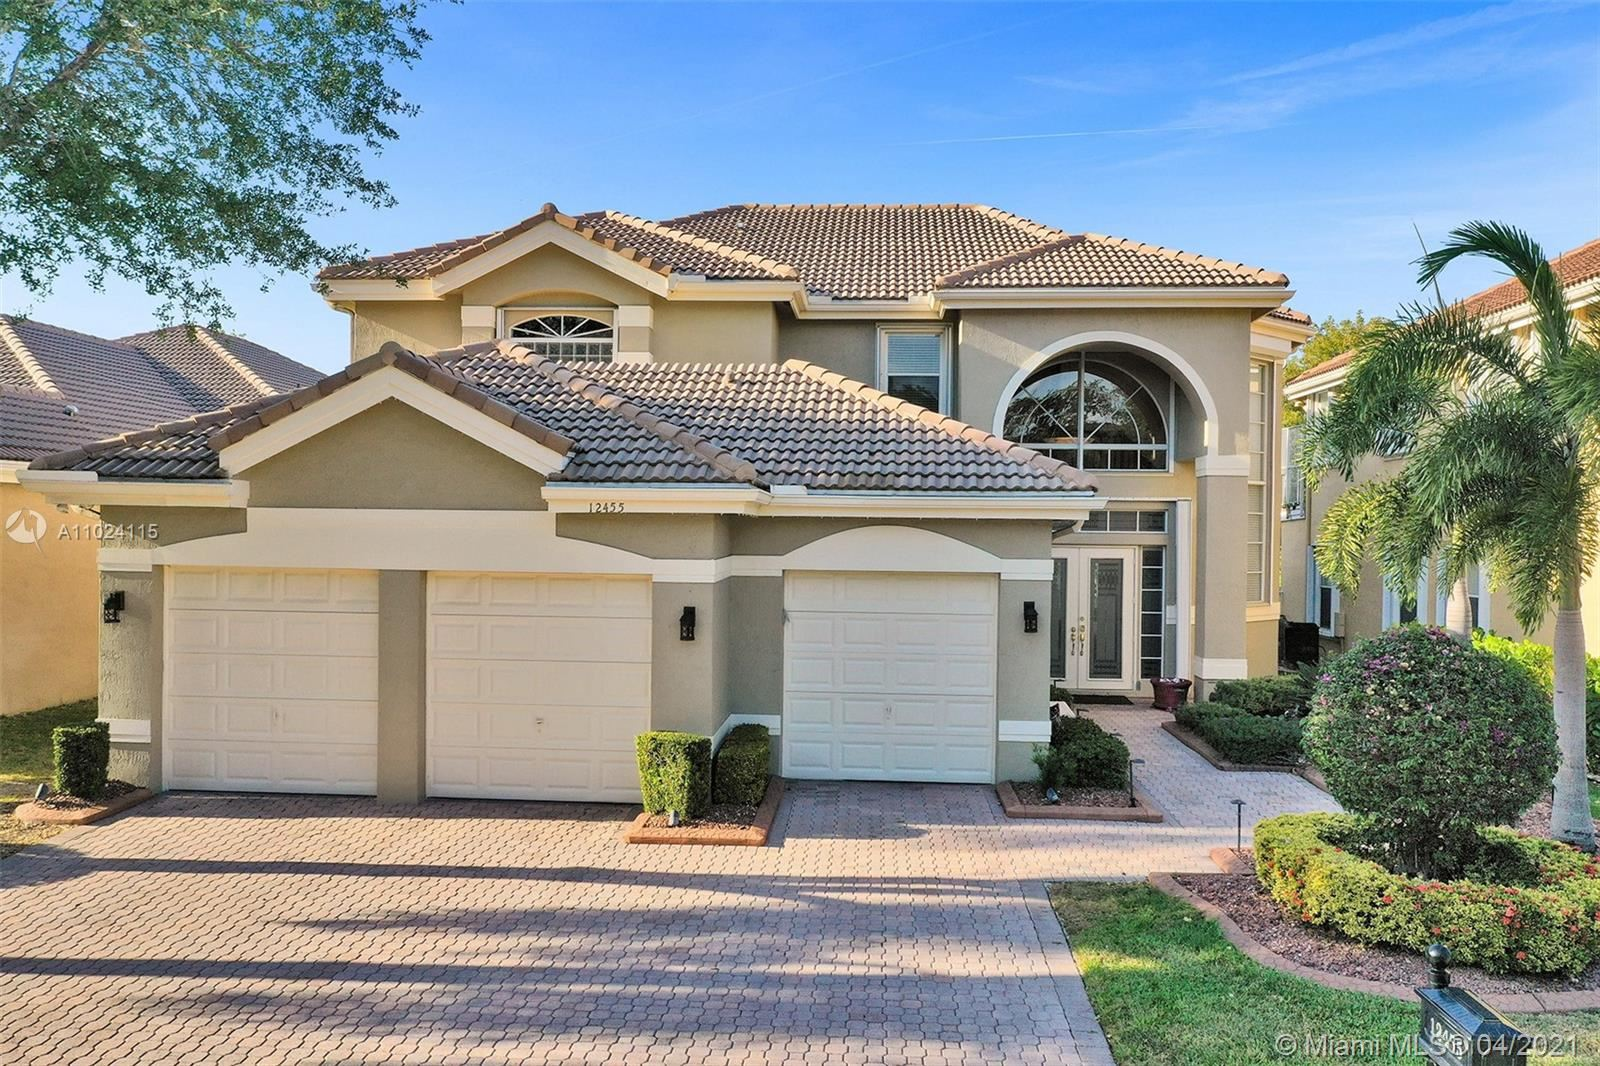 12455 NW 63rd St, Coral Springs, FL 33076 - #: A11024115